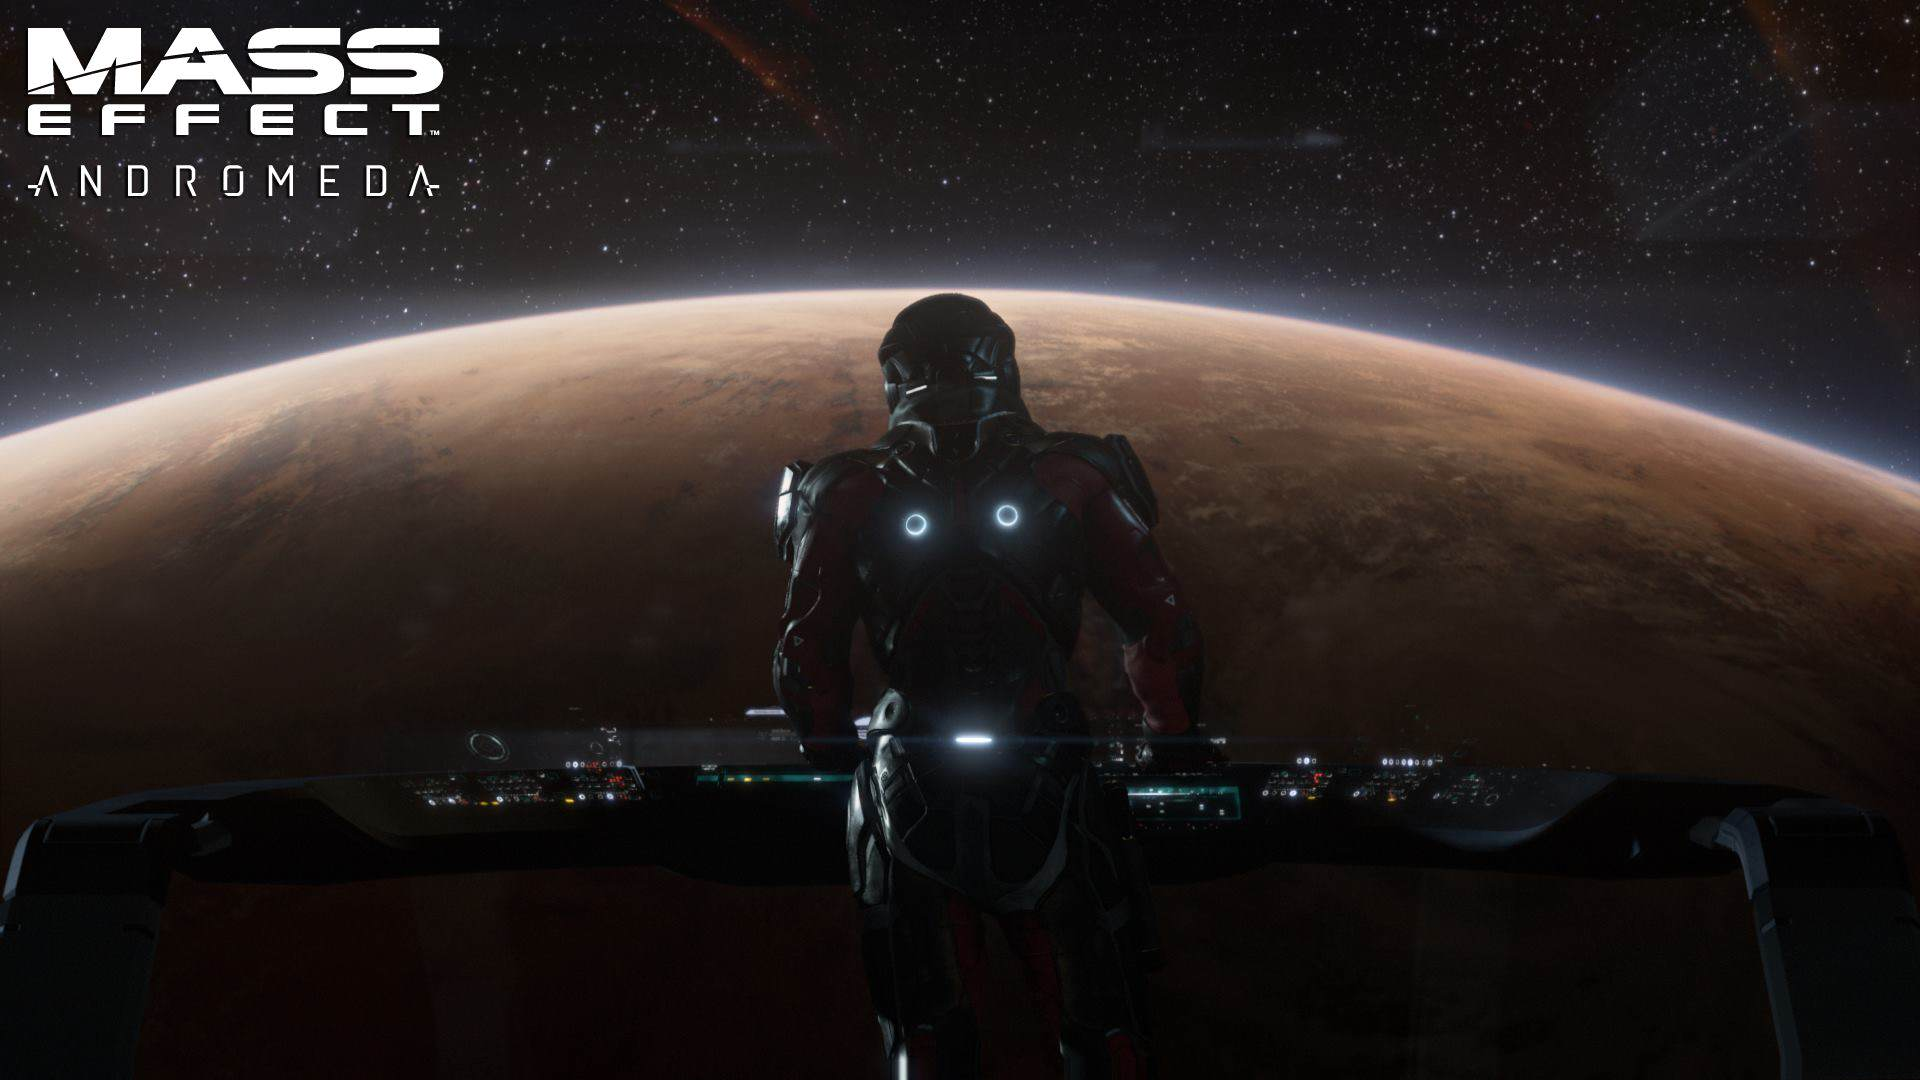 Leaked Mass Effect Andromeda Survey Holds Some Key Details mass effect andromeda